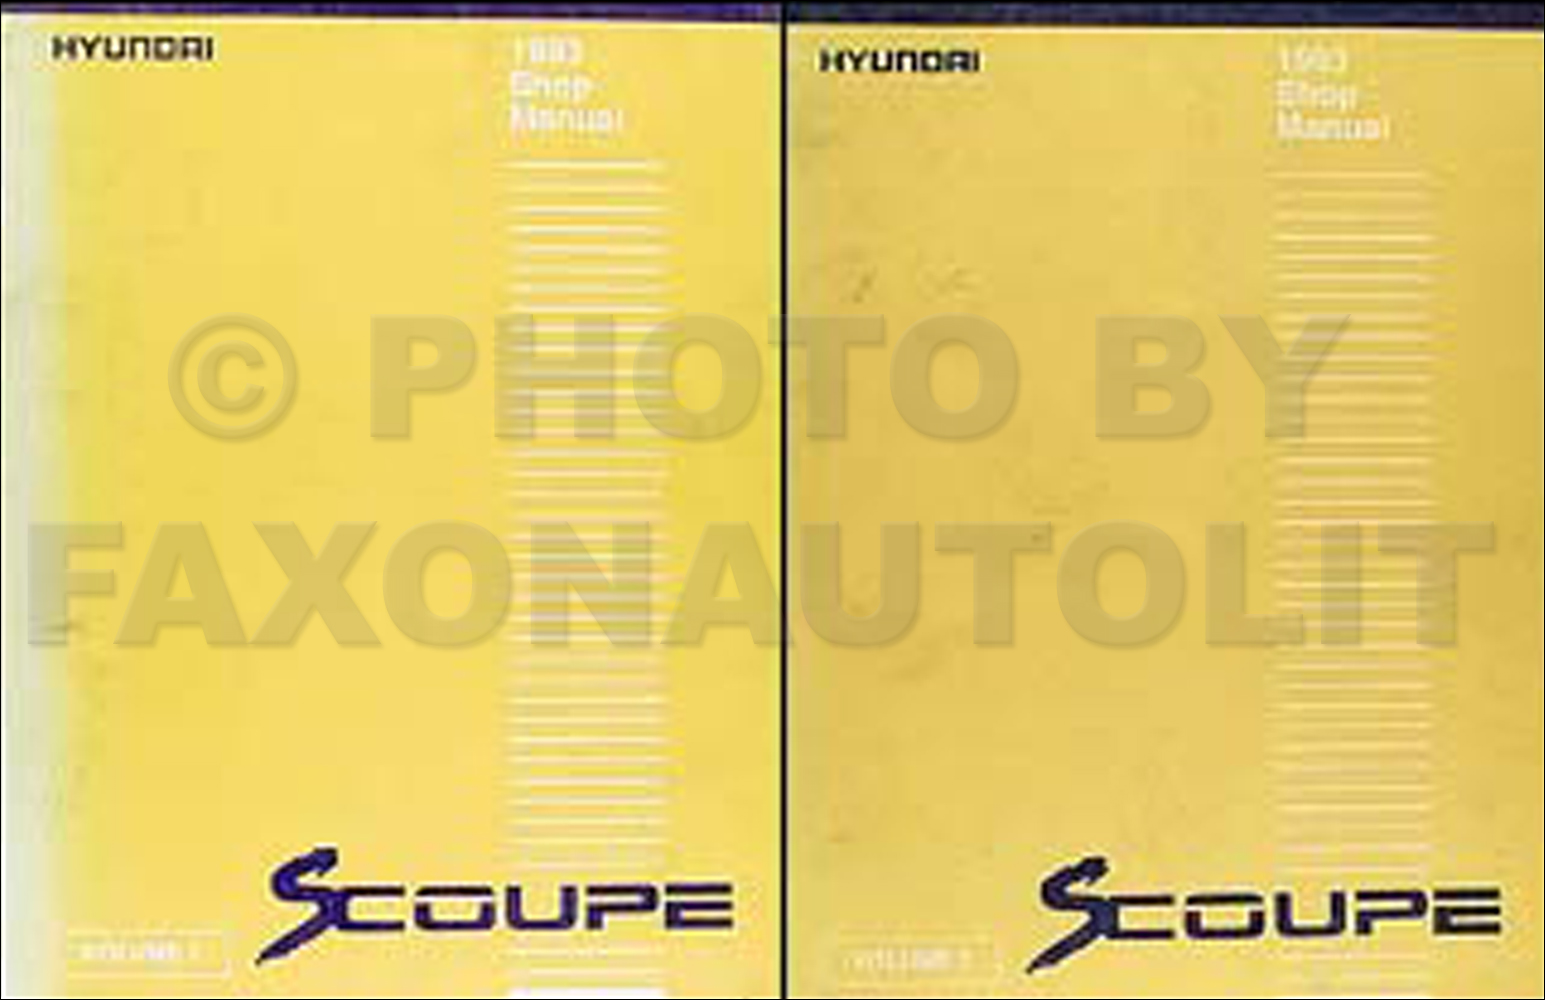 1993 Hyundai Scoupe Shop Manual Original 2 Volume Set